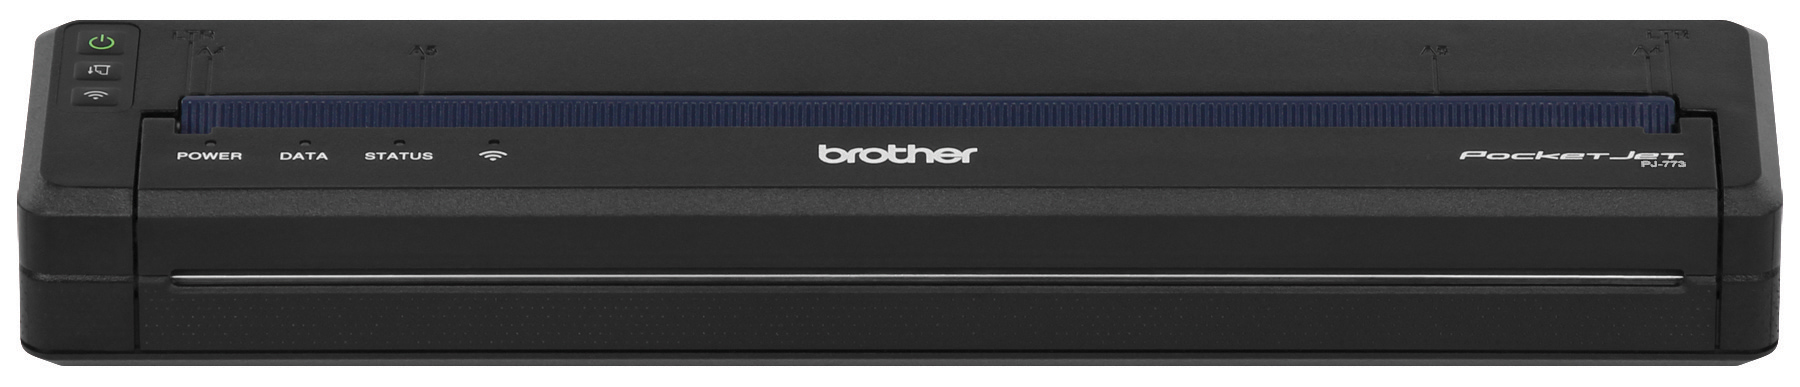 brother software free  for mobile